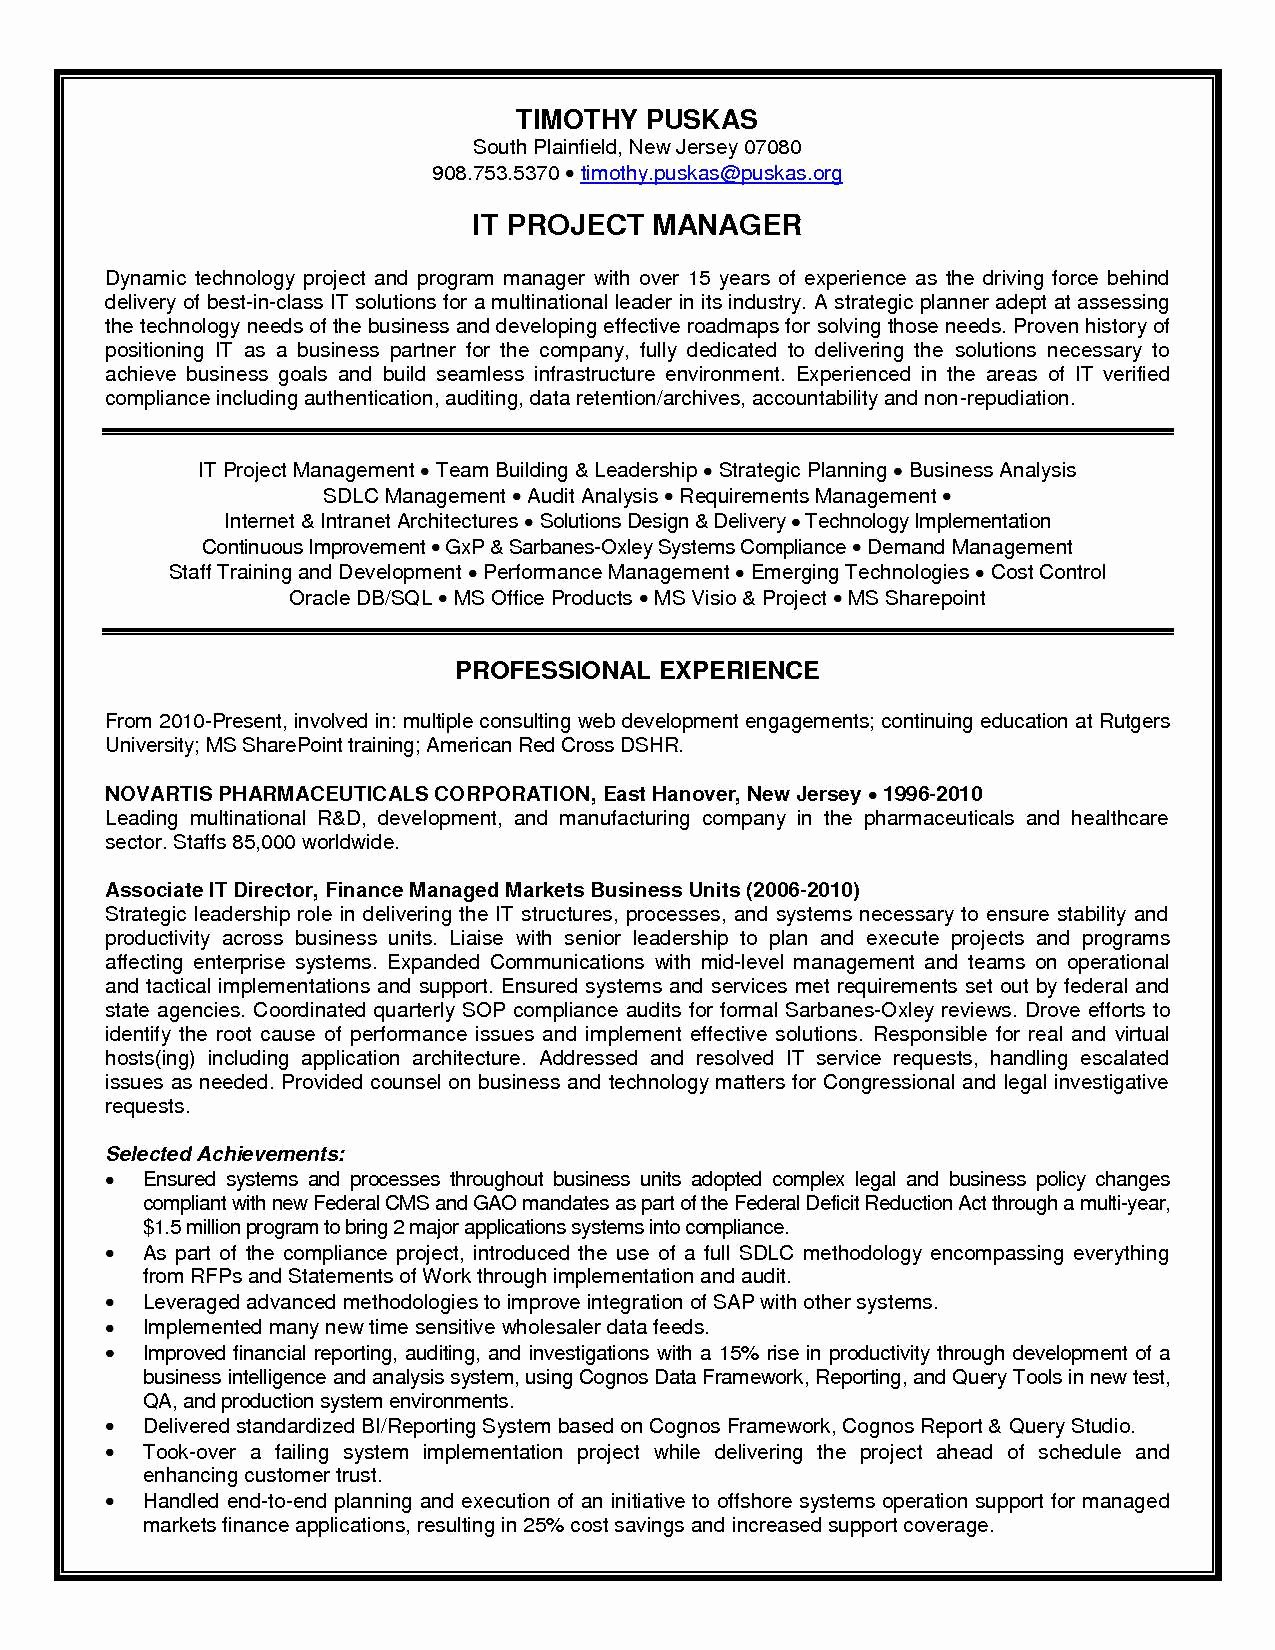 Sample Resume for An assistant It Projecter Monster